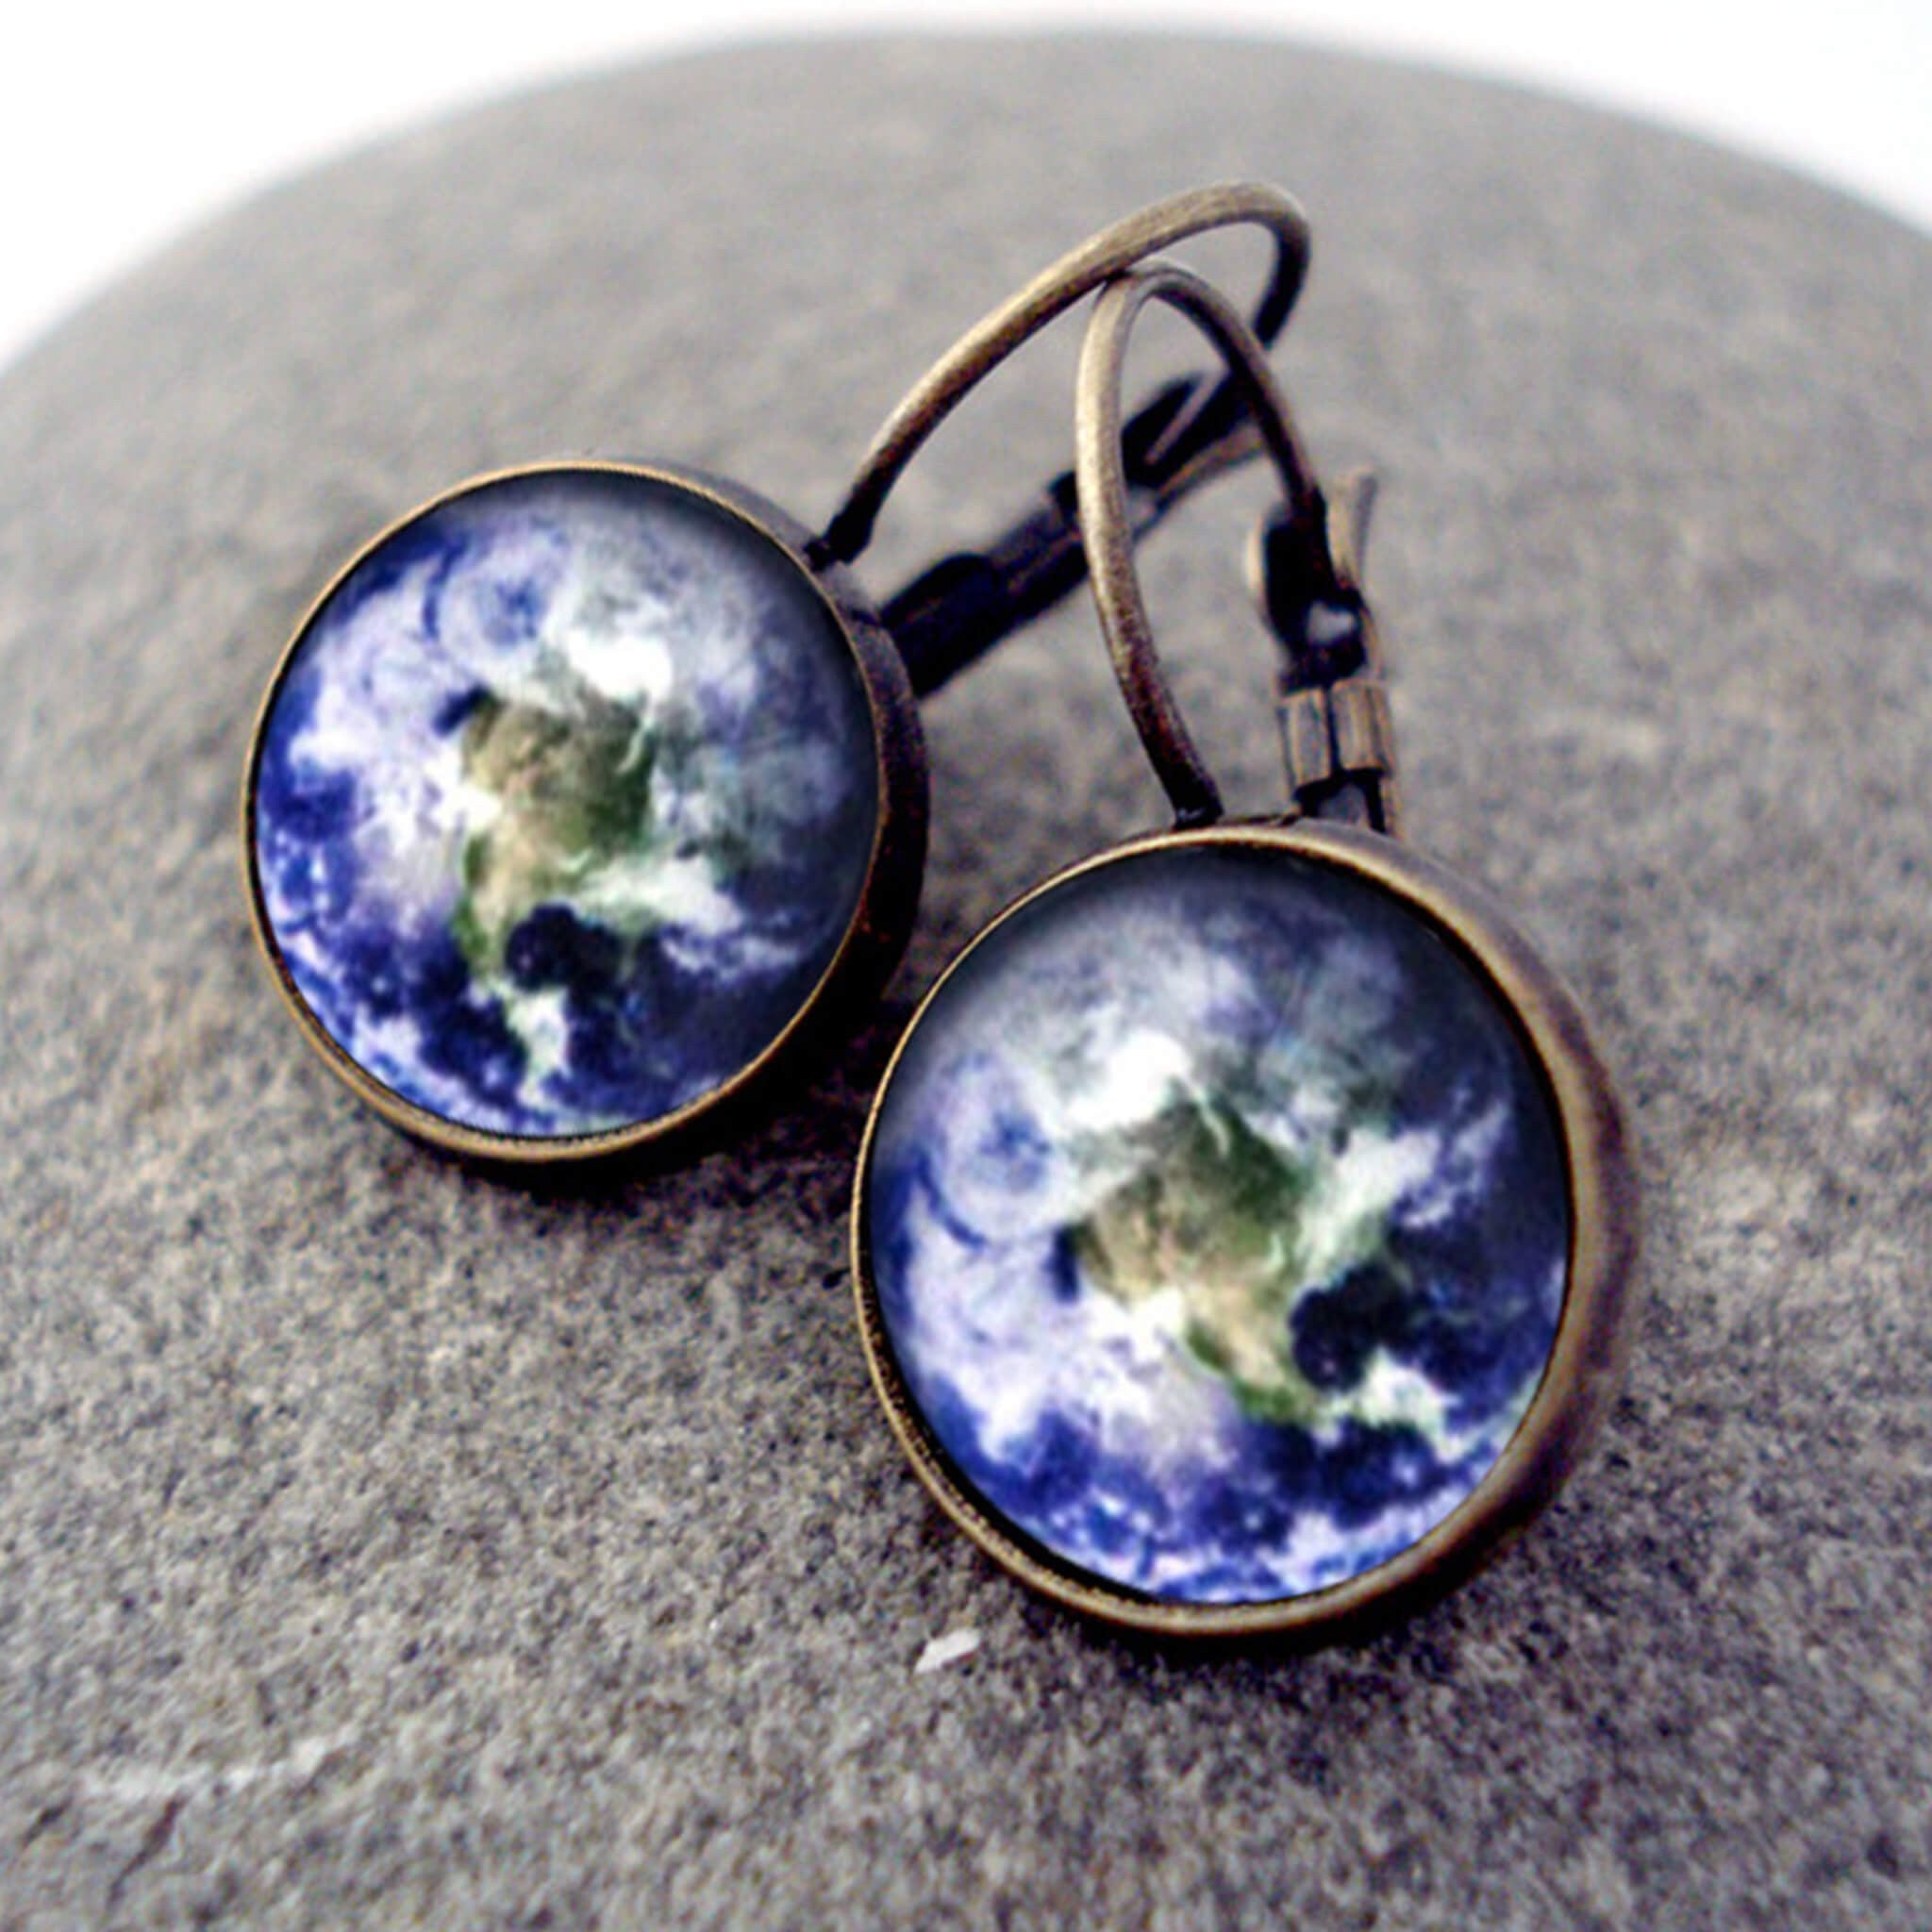 Customizable Outer Space Galaxy Earrings in Antique Bronze with Leverback Closure - Choose your outer space image - Universe Jewelry by YugenTribe